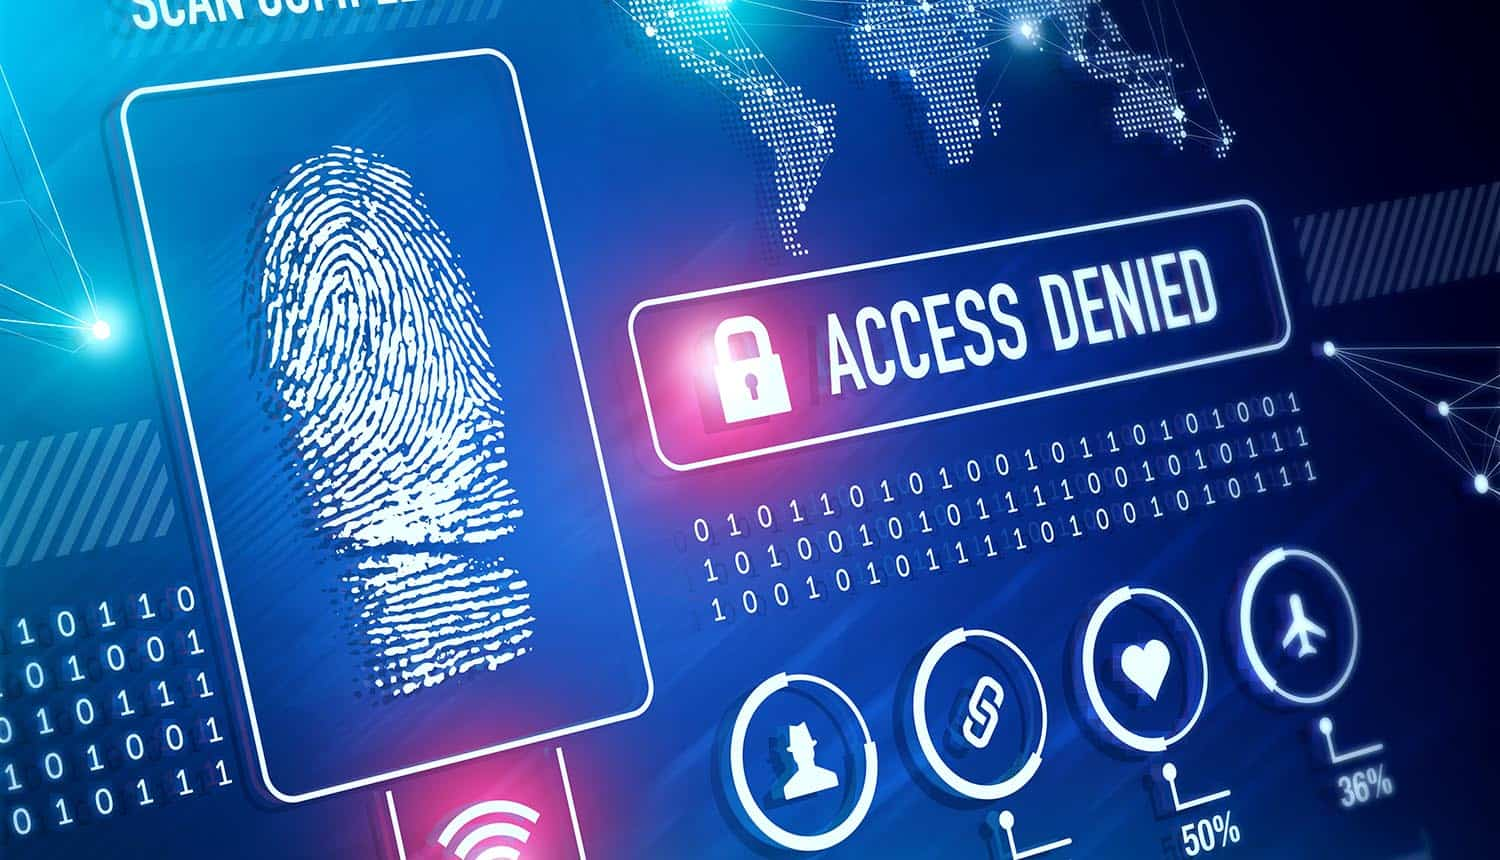 The Fear of Biometric Technology in Today's Digital World